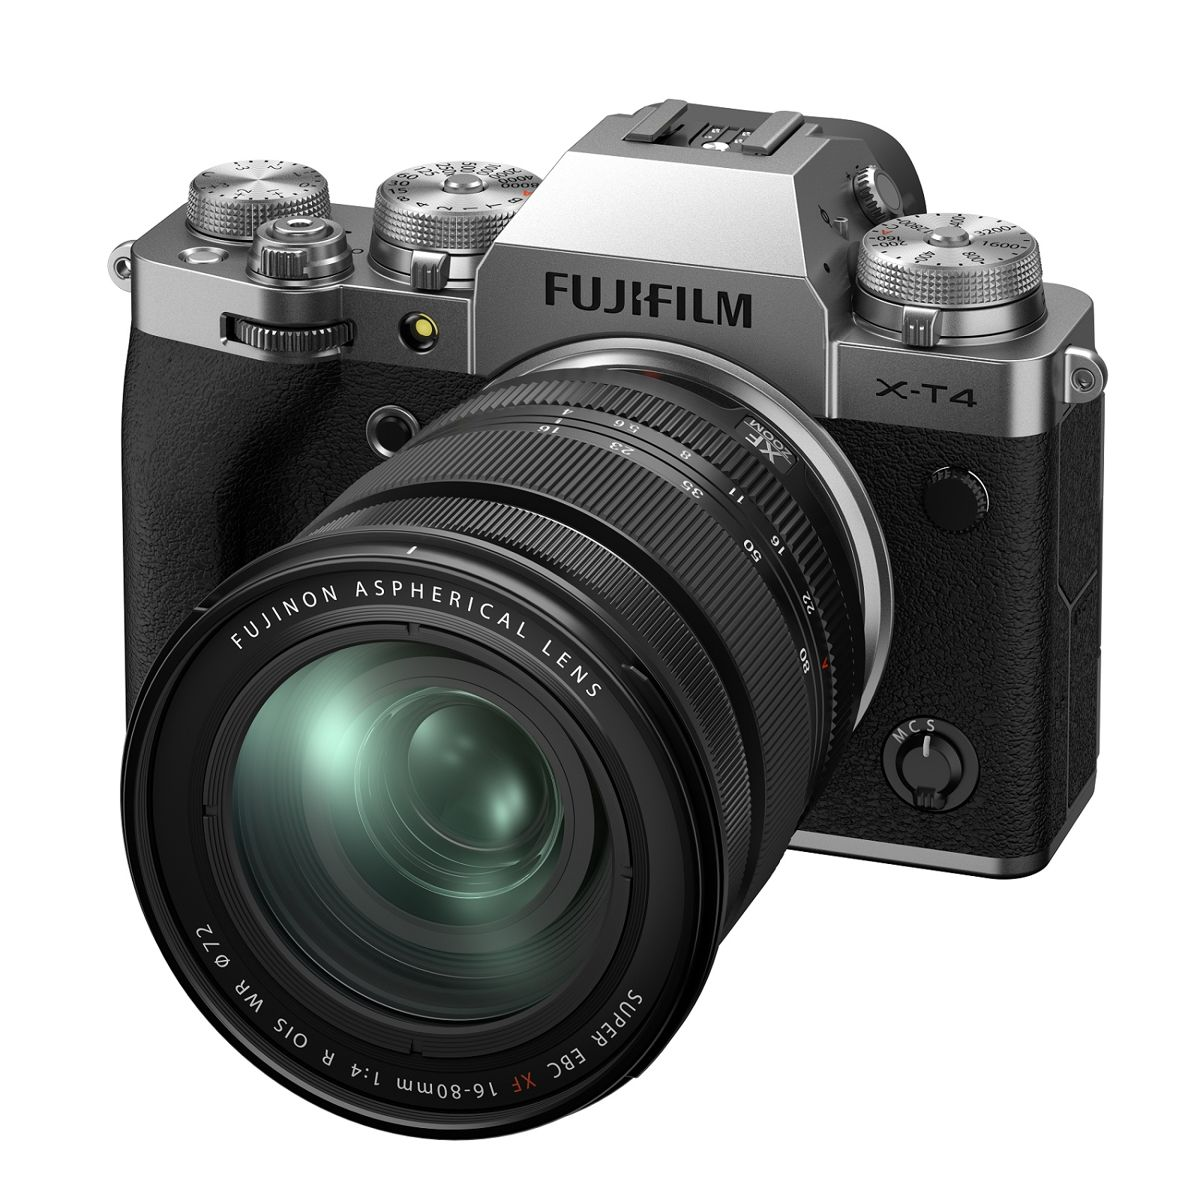 Ce pret are noua camera Fujifilm cu stabilizare de imagine integrata, X-T4